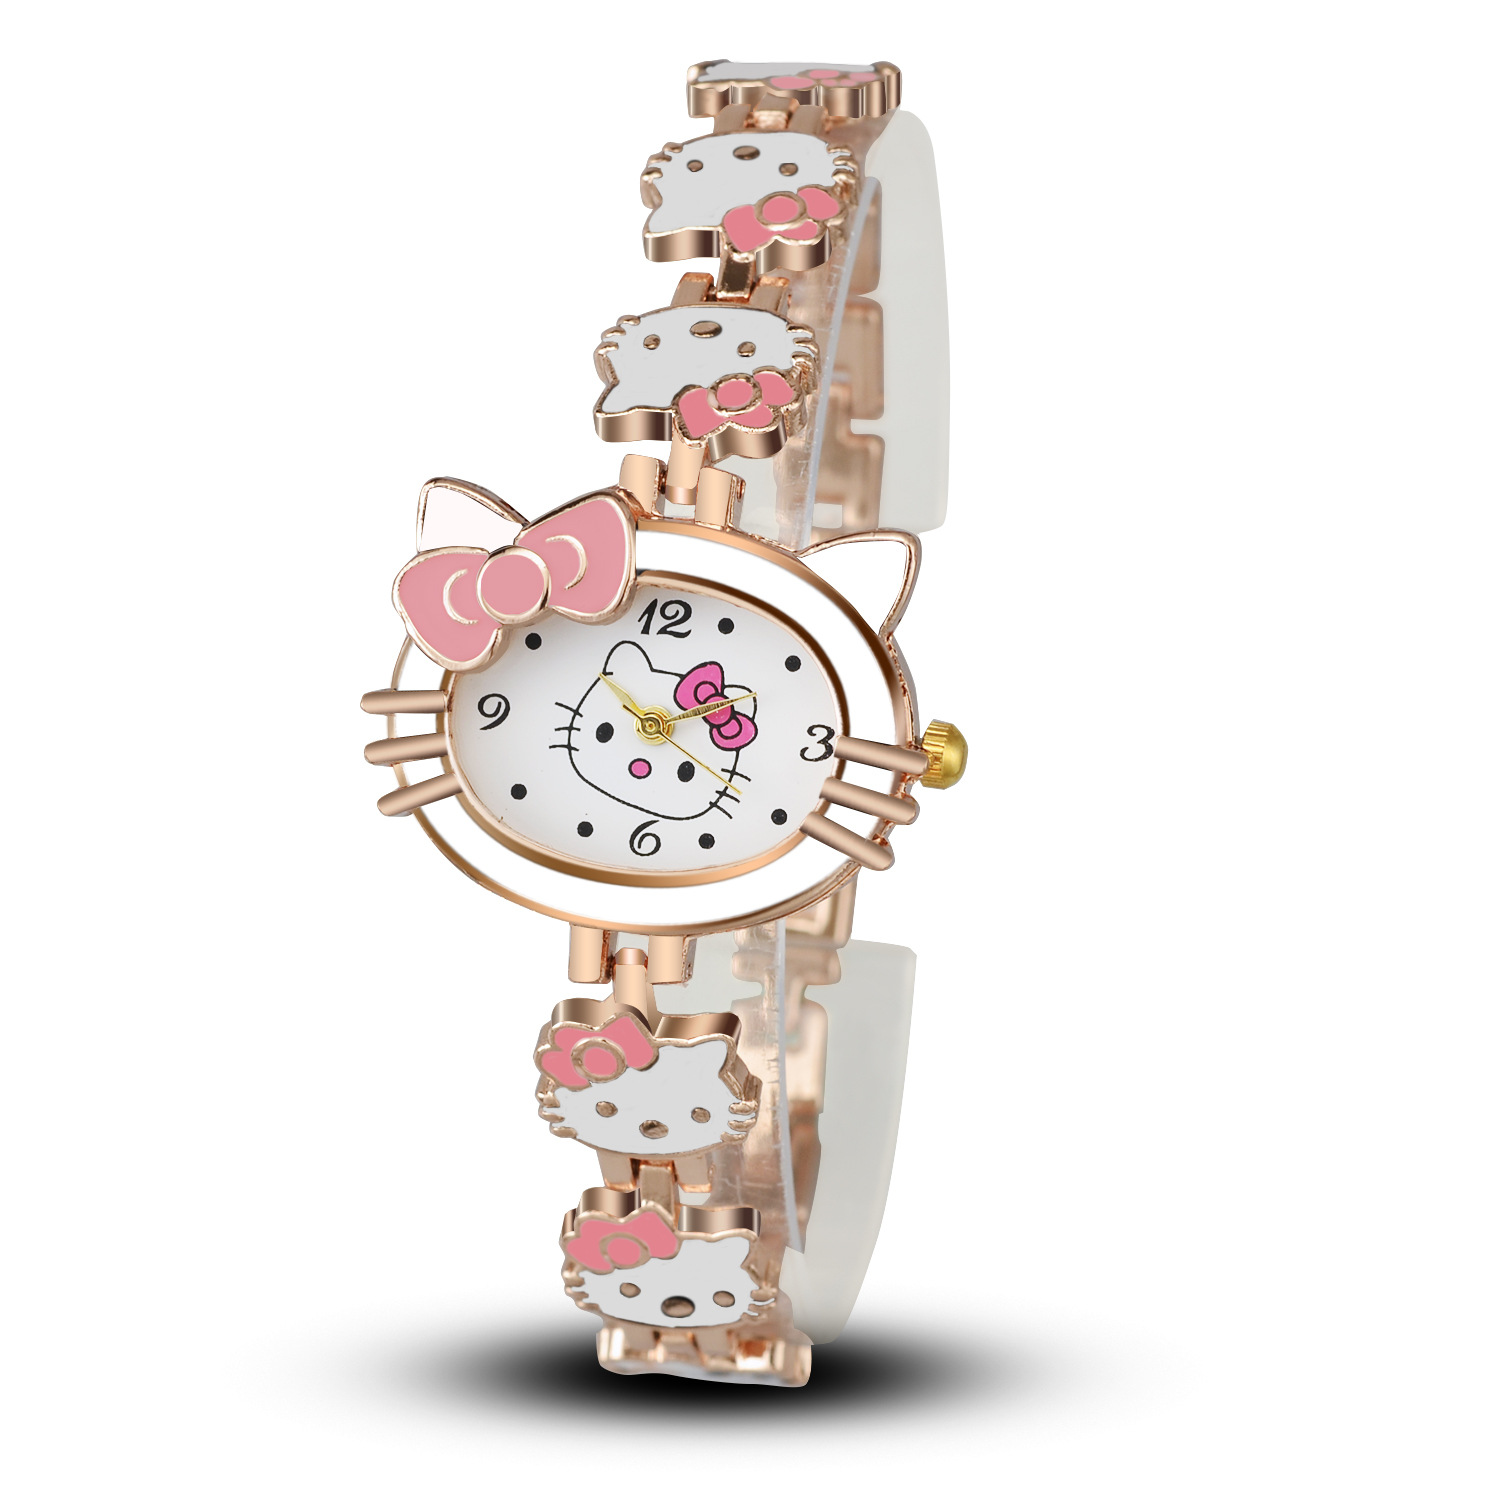 Hello Kitty Watch For Kids Children Girls Cute Cartoon Watch Quartz Bracelet Wrist Watches Relogio Infantil Montre Enfant Gifts